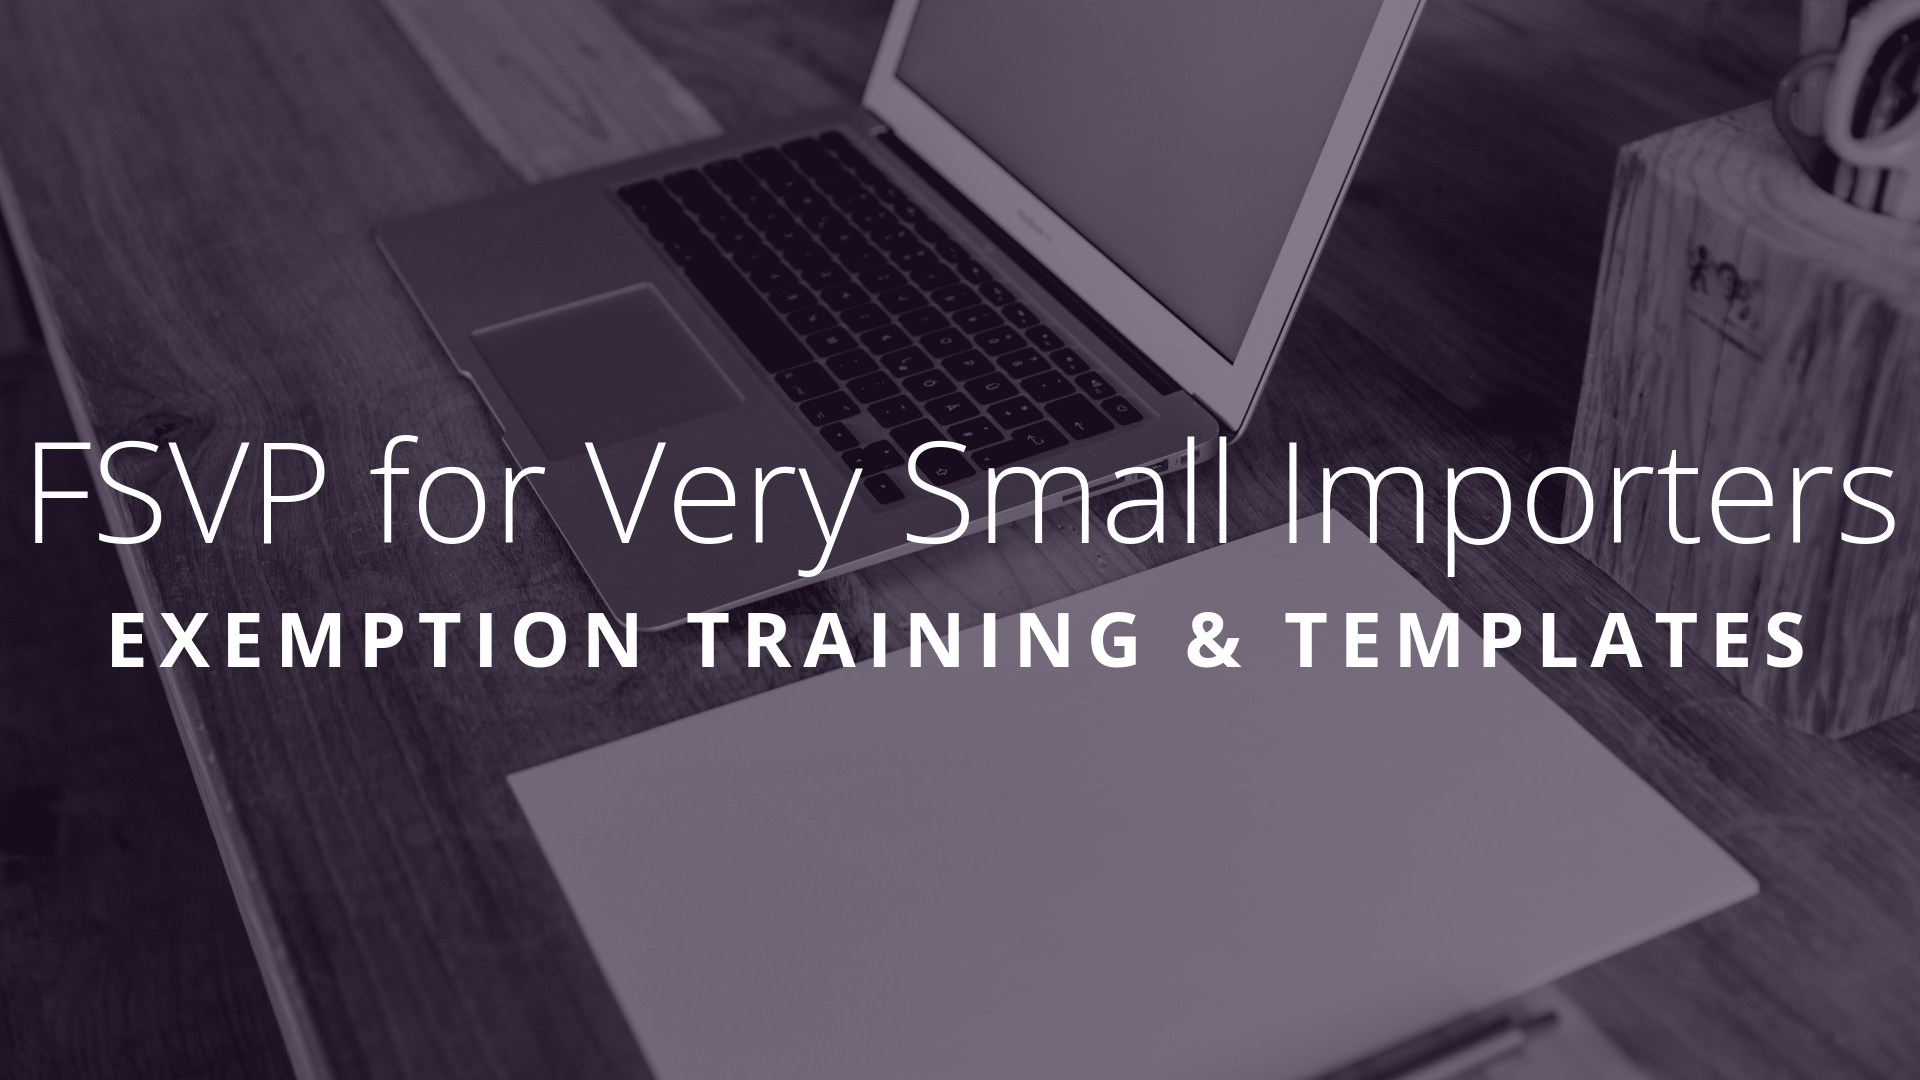 """Get Started - Did you know that """"Very Small Importers"""" are provided modified requirements to comply with the FSVP regulations? Contact us about our training and template package to hit the ground running."""